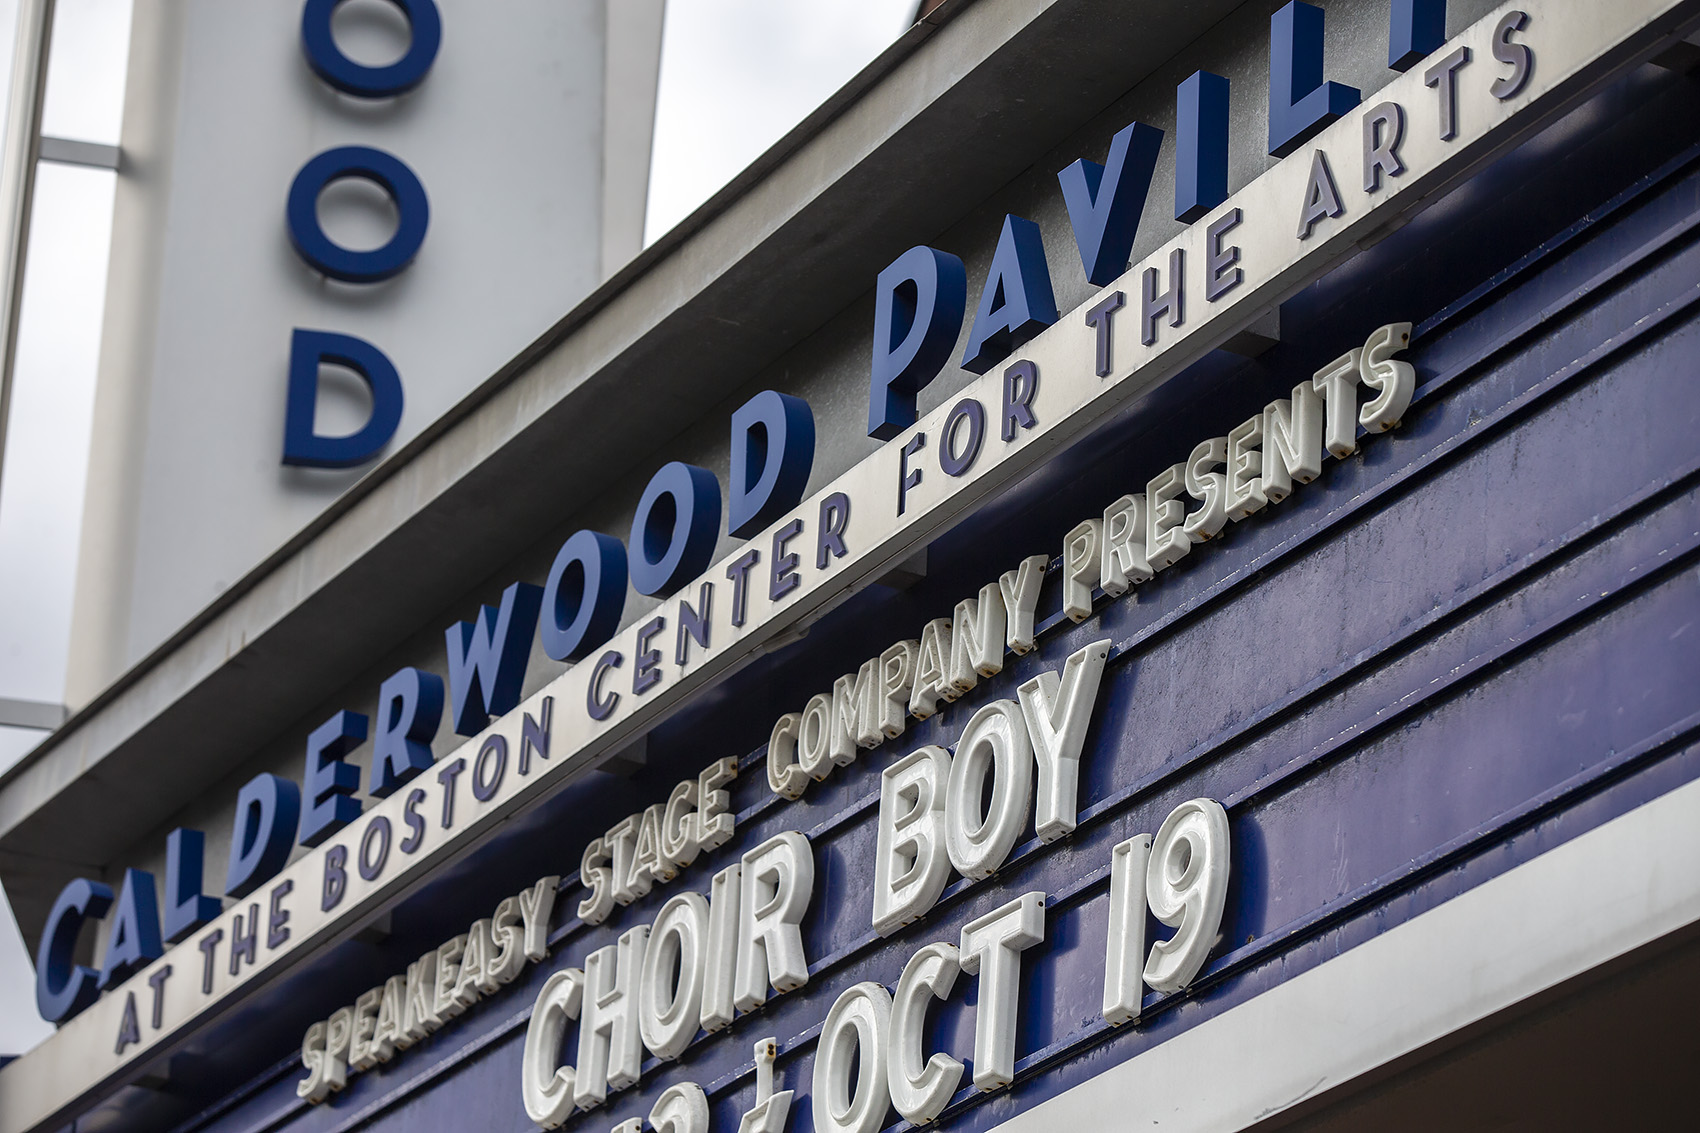 The marquee of the Calderwood Pavilion at the Boston Center for the Arts in the South End. (Jesse Costa/WBUR)